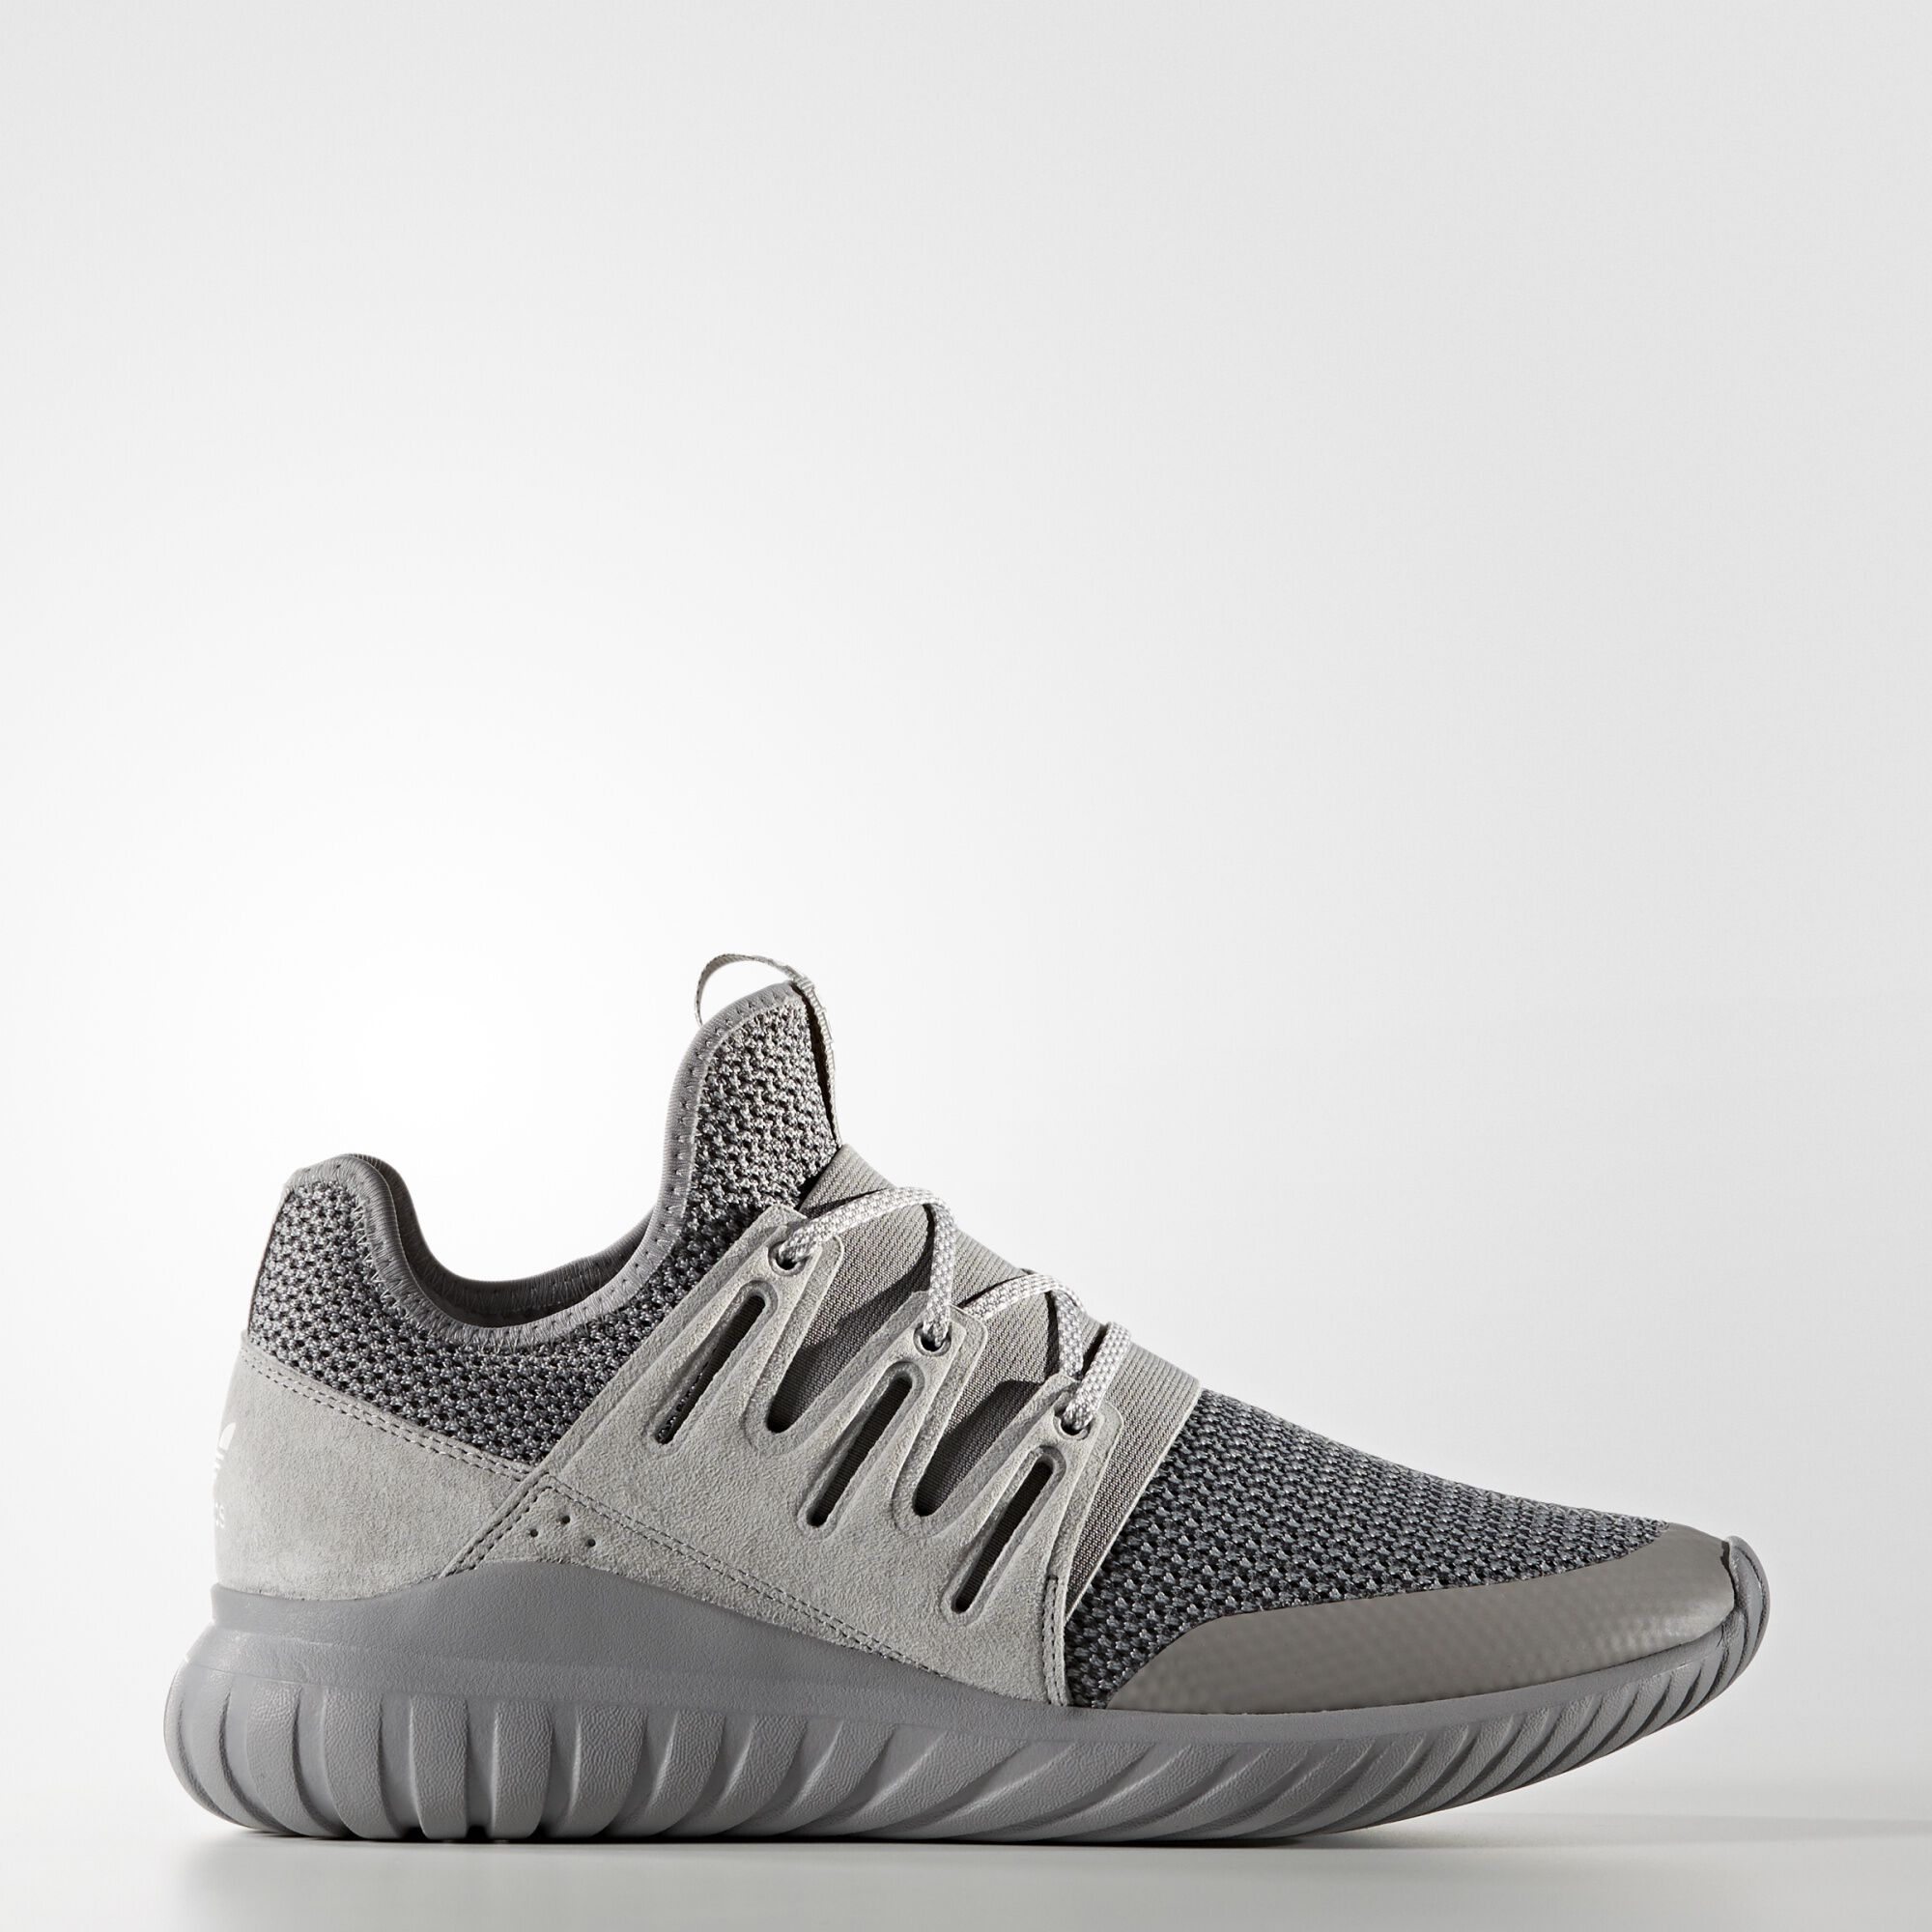 Adidas Tubular Doom Pk Vintage White & Solid Grey